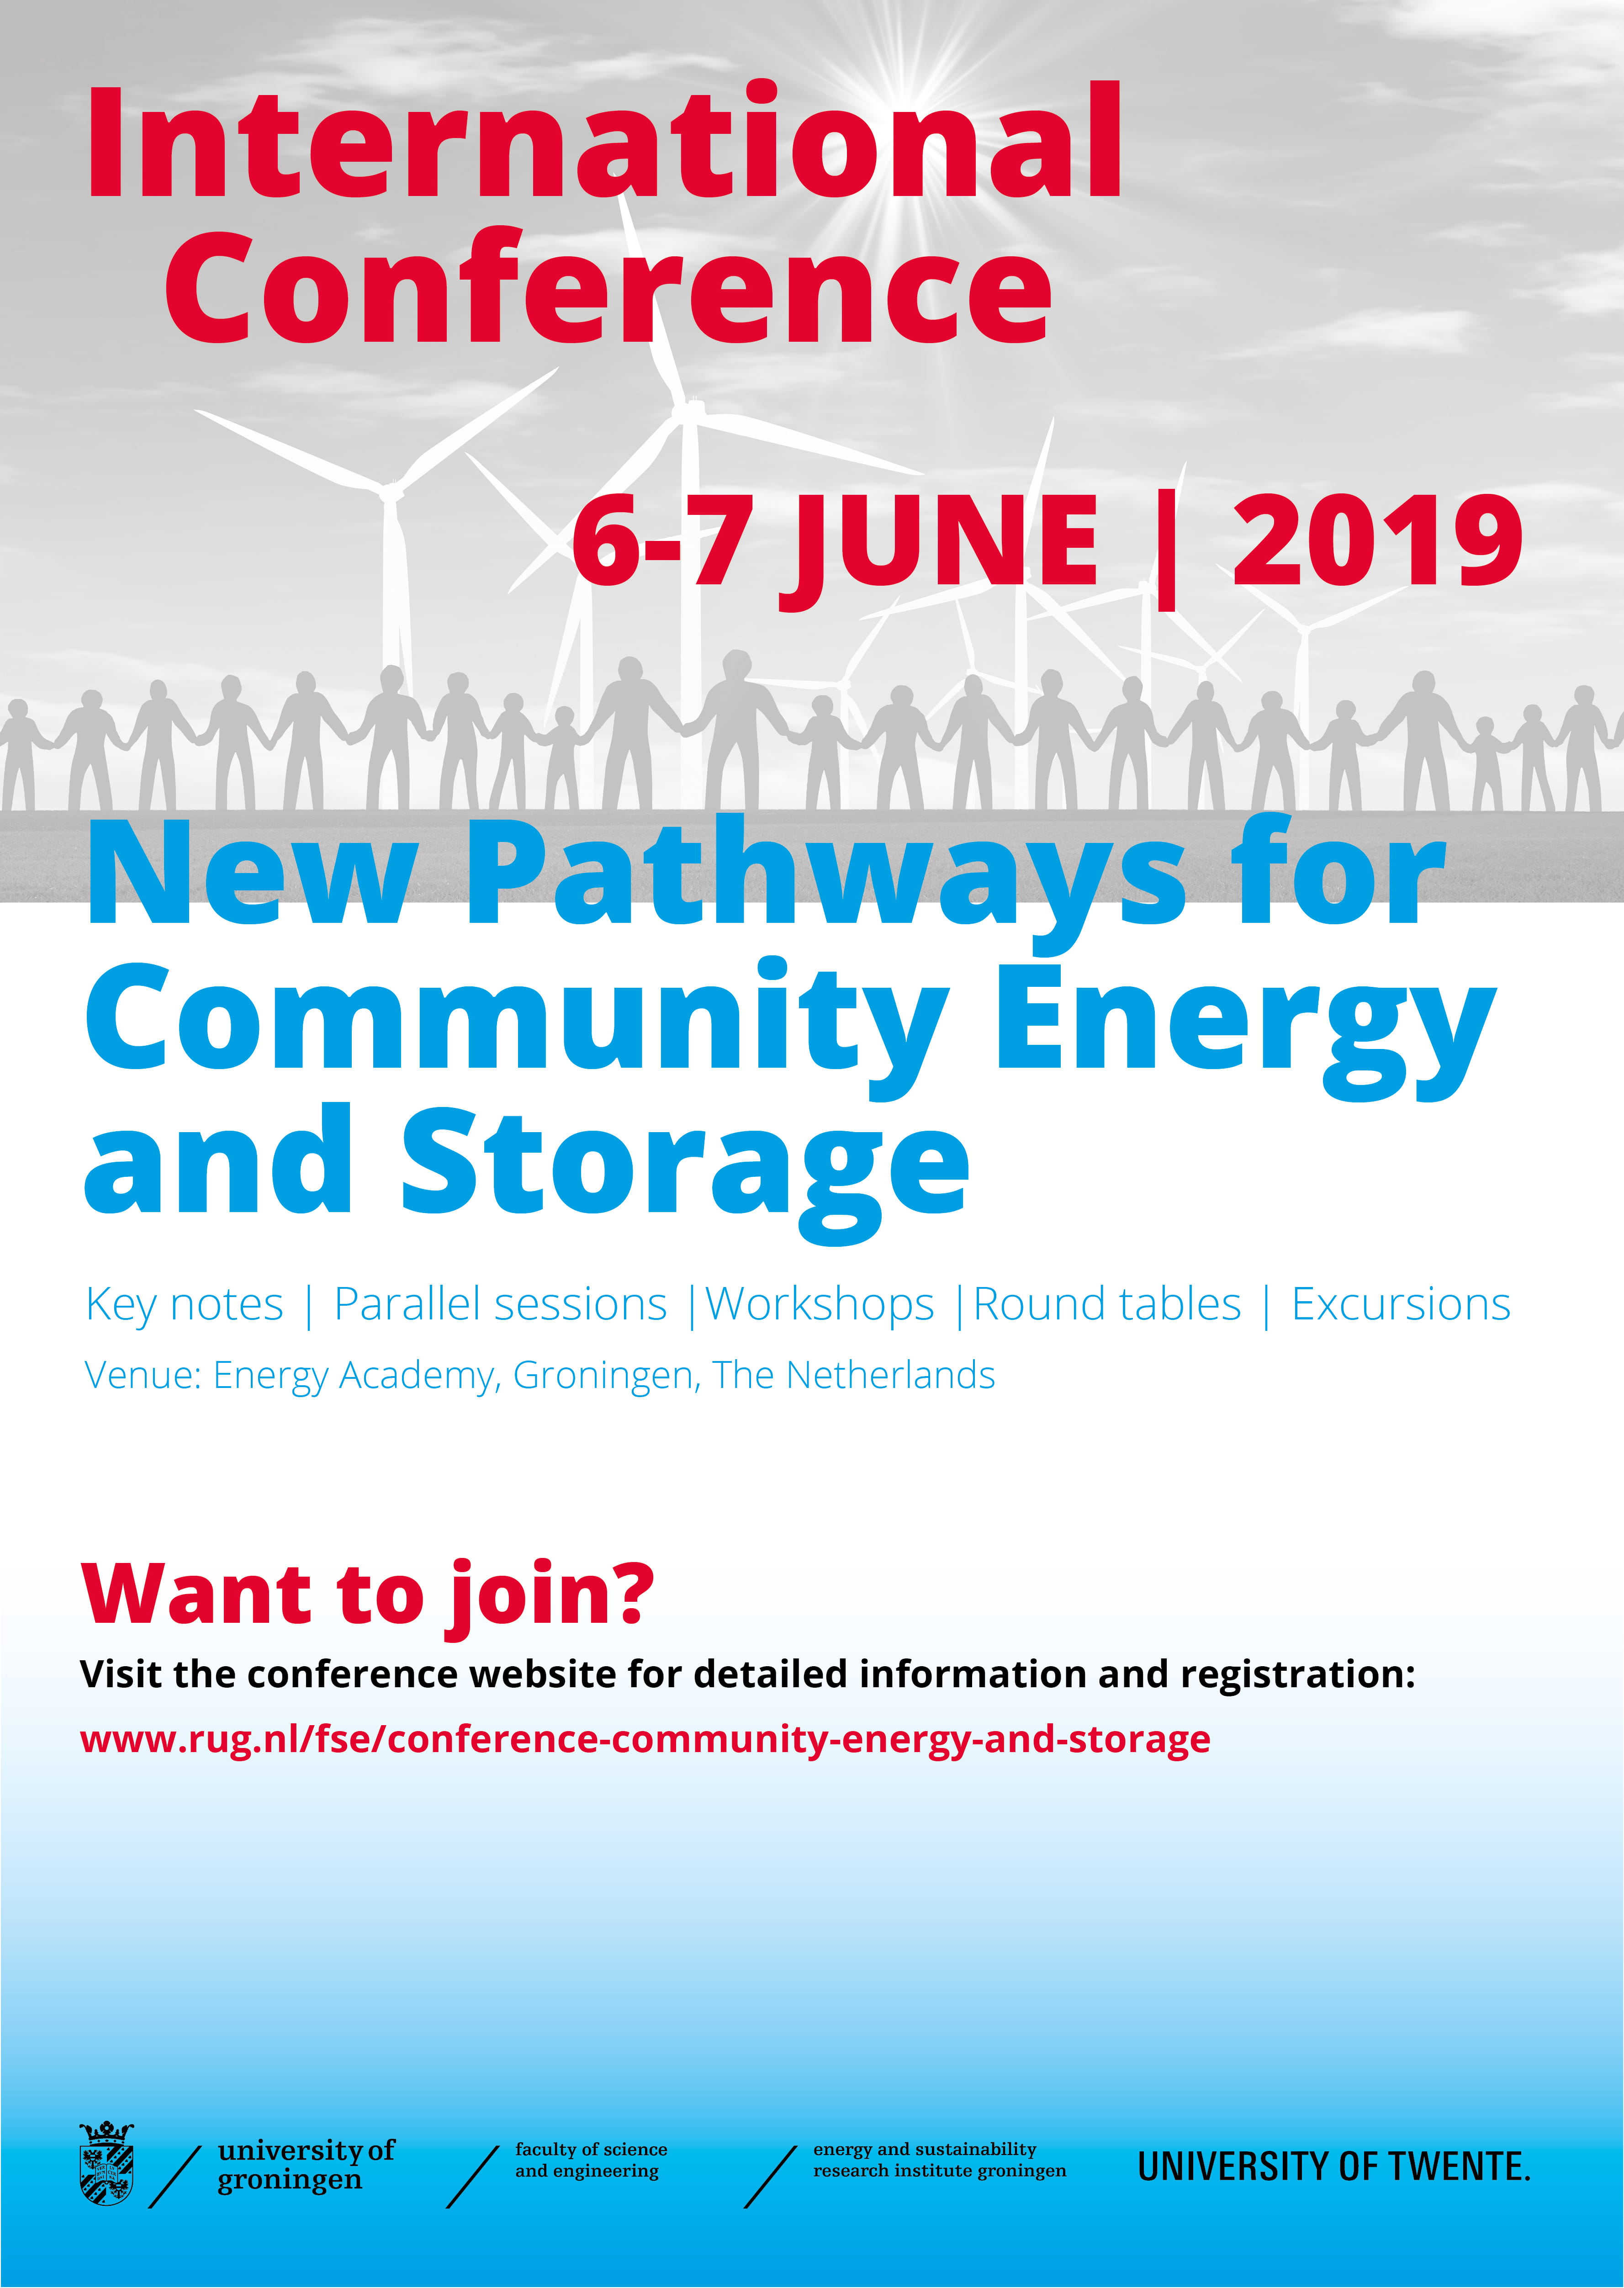 conference 6-7 June 2019